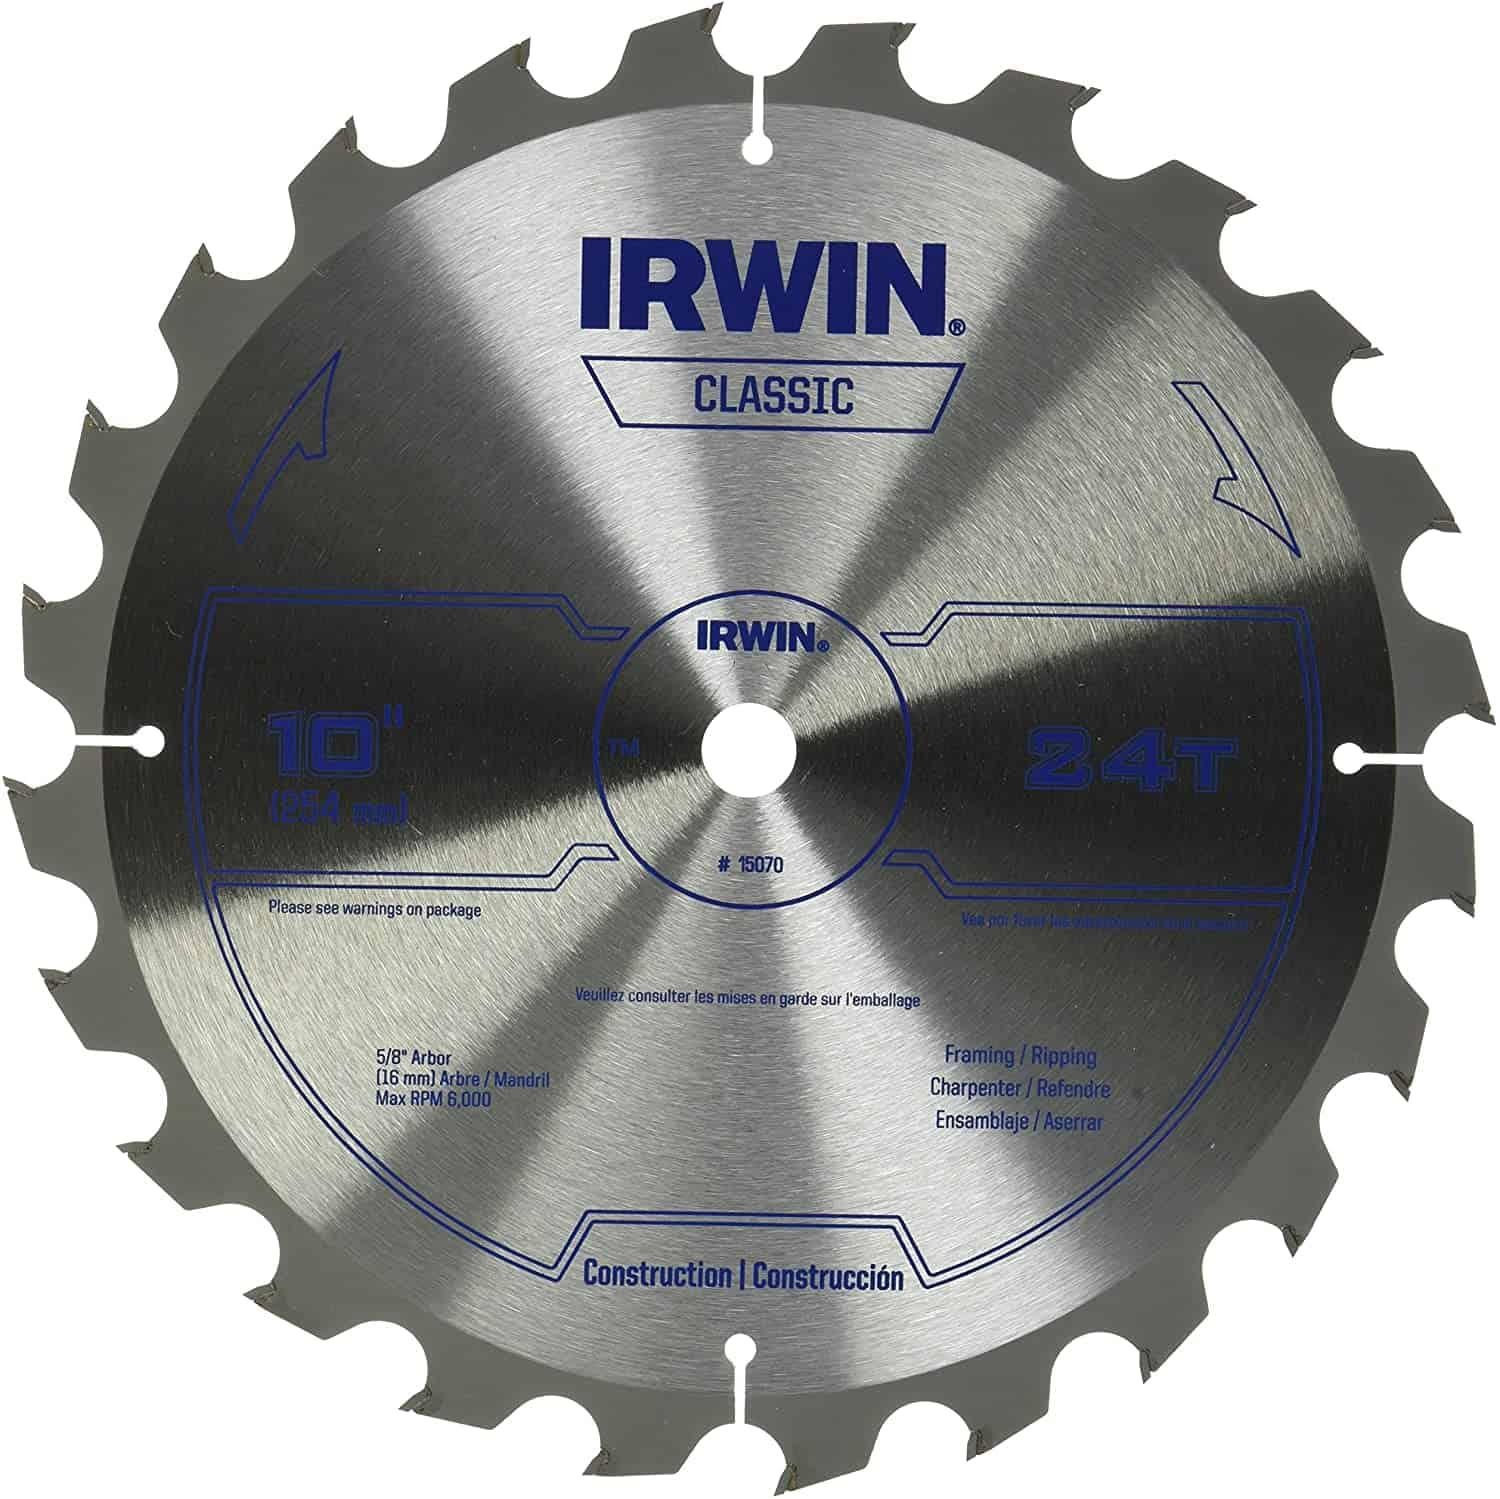 Best saw blade for on a budget- IRWIN Classic Series, Carbide Table (15070)